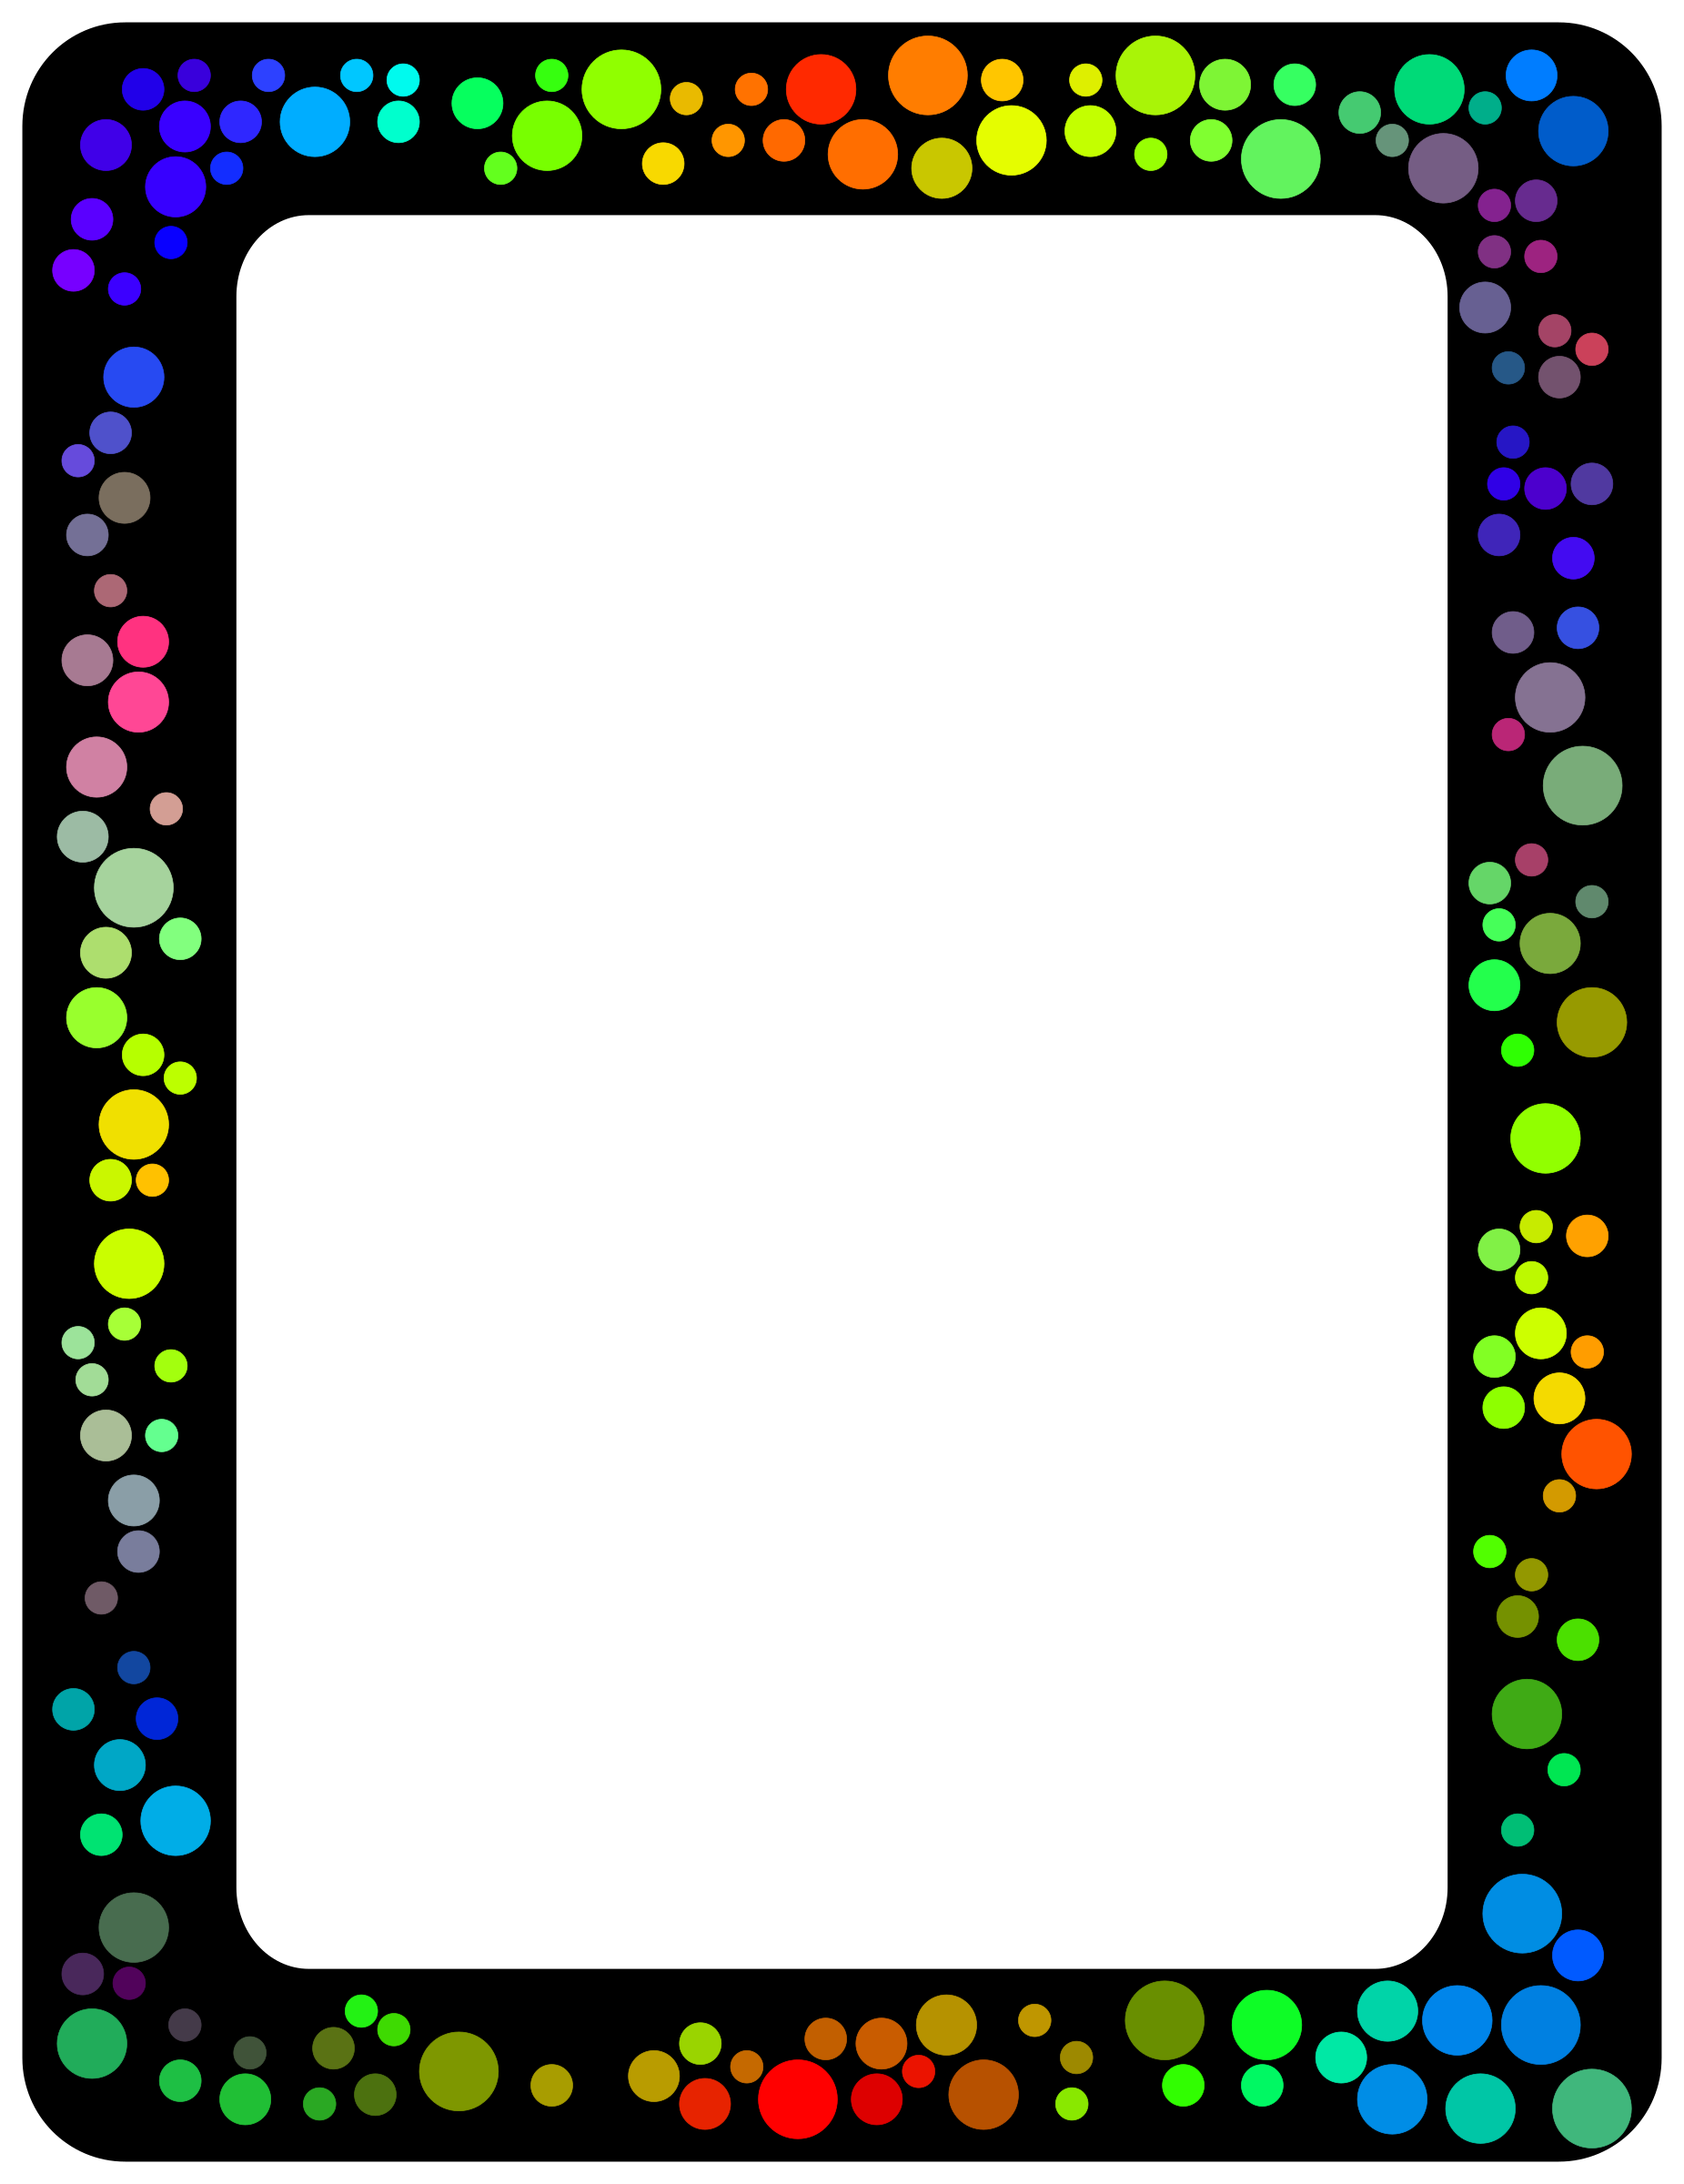 Colorful borders png. Dot border icons free